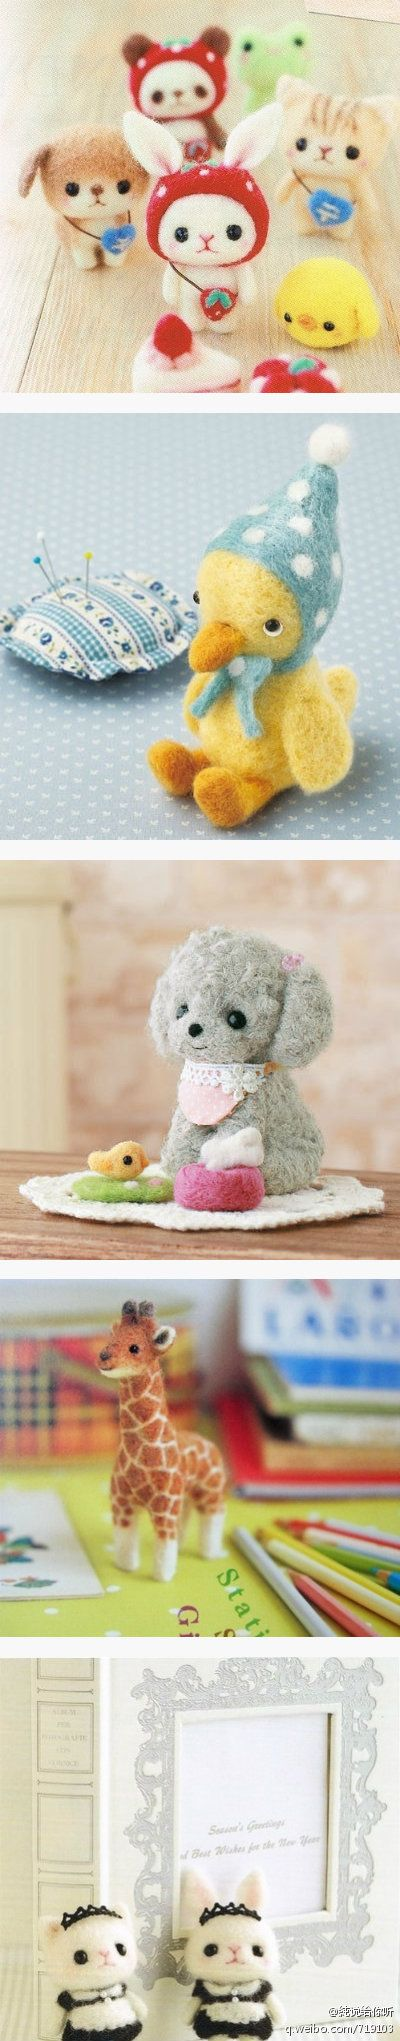 Cute collage of needle felted critters. Here is a bunch of inspiring ideas for needle felting.